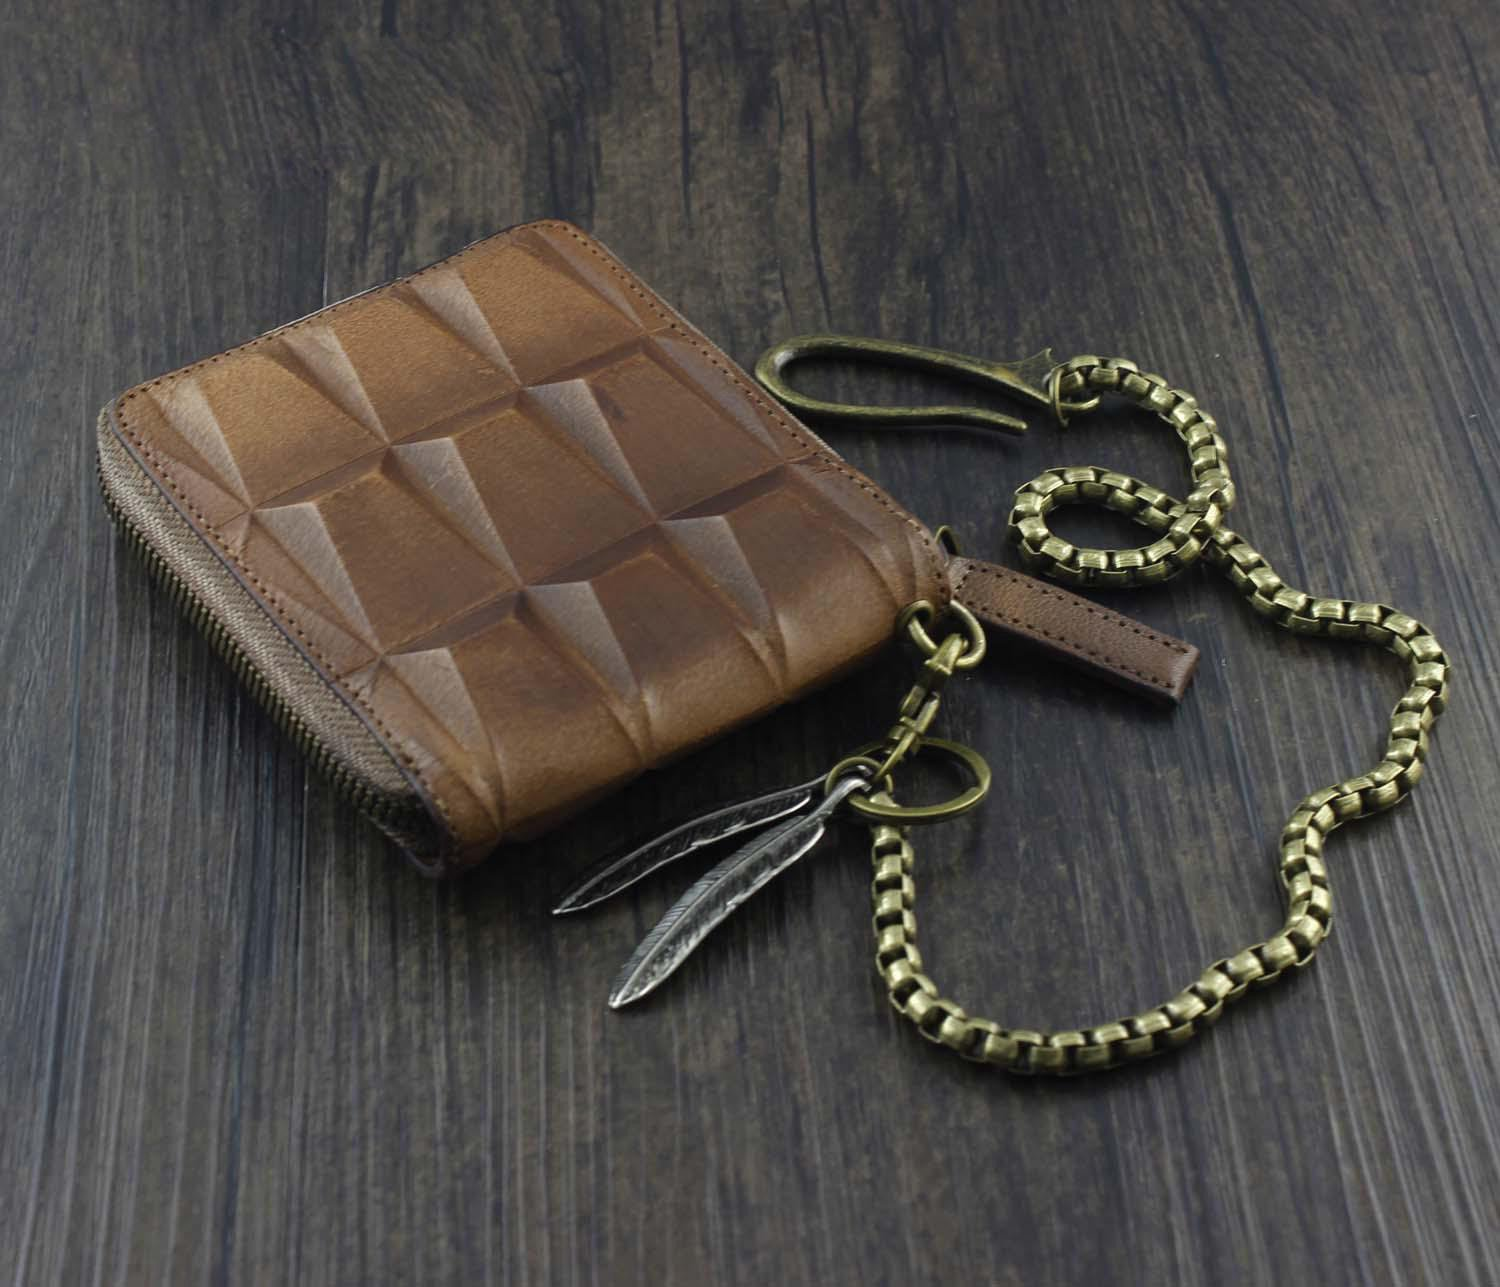 Fashion Brown Leather Men's Small Zipper Biker Chain Wallet Wallet with Chain For Men